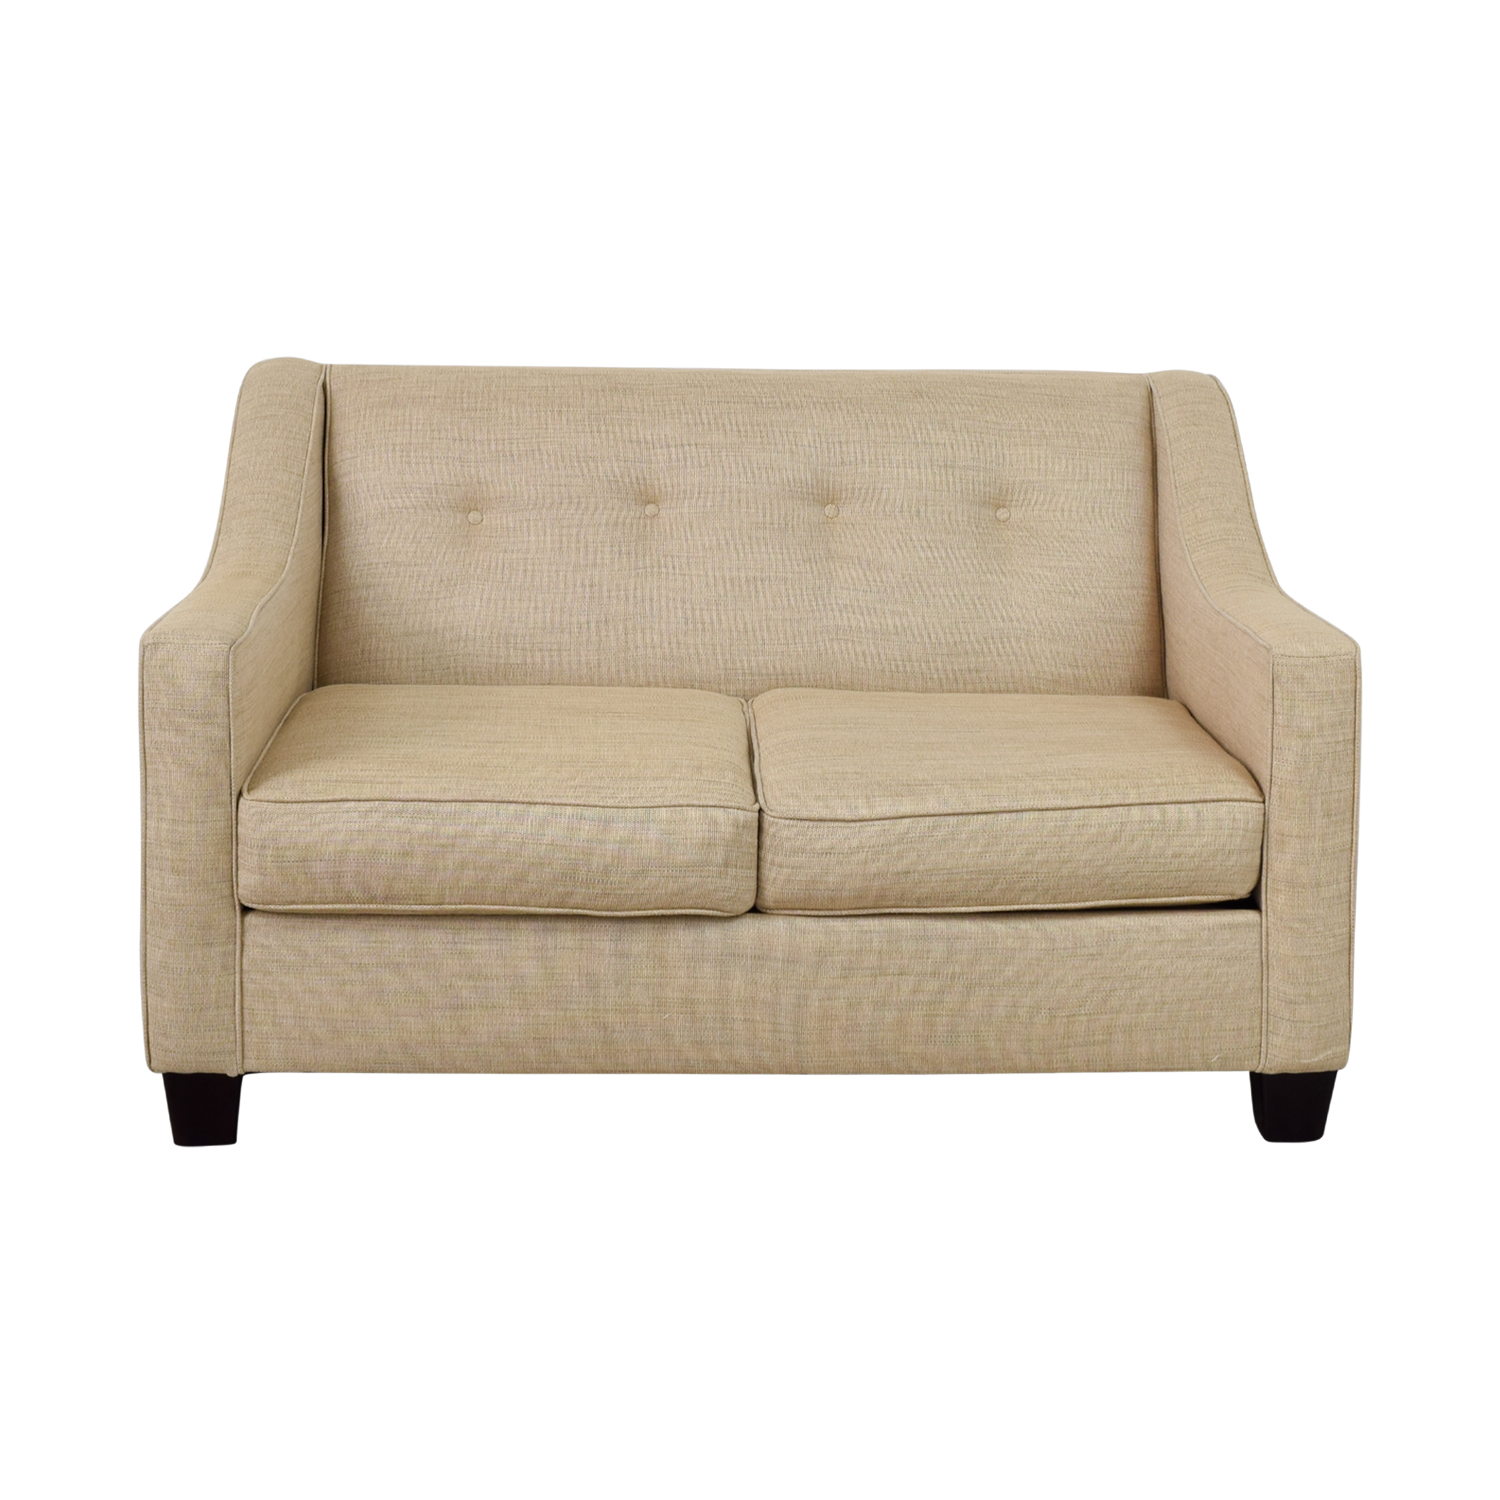 Bob's Furniture Bob's Furniture Caleb Tan Tufted Back Loveseat for sale